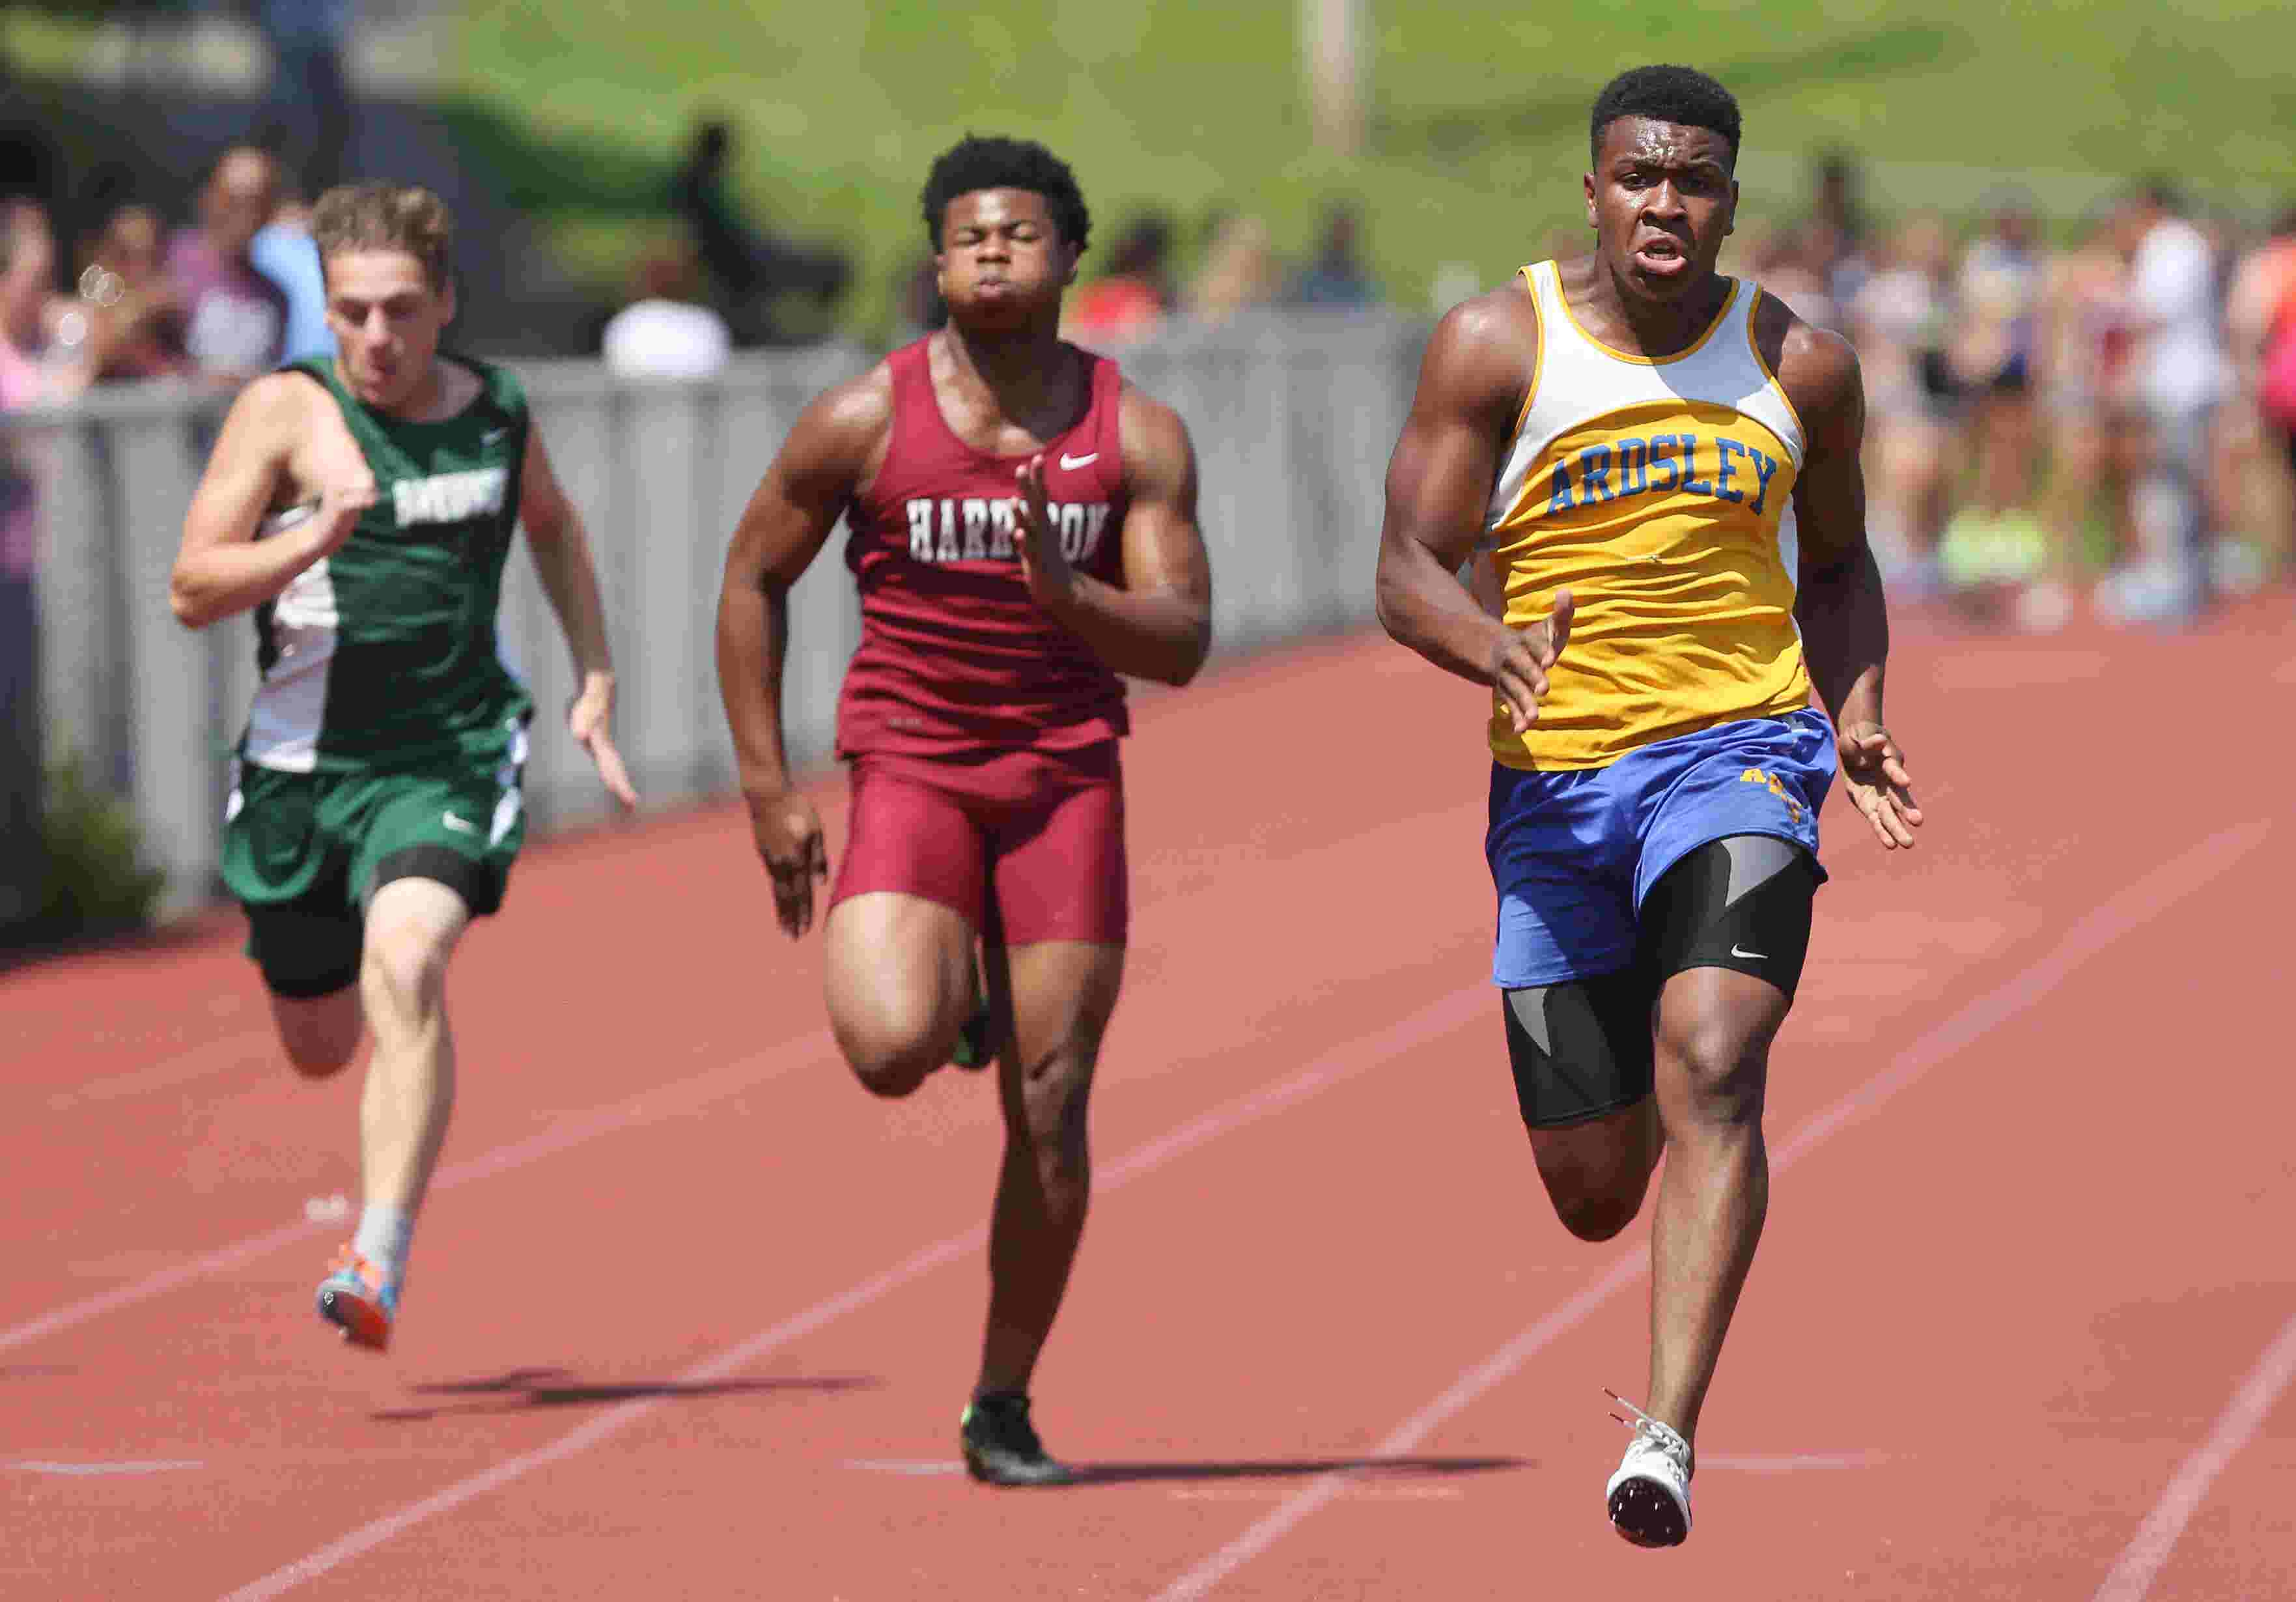 Video: Class B track and field championships at Beacon HS